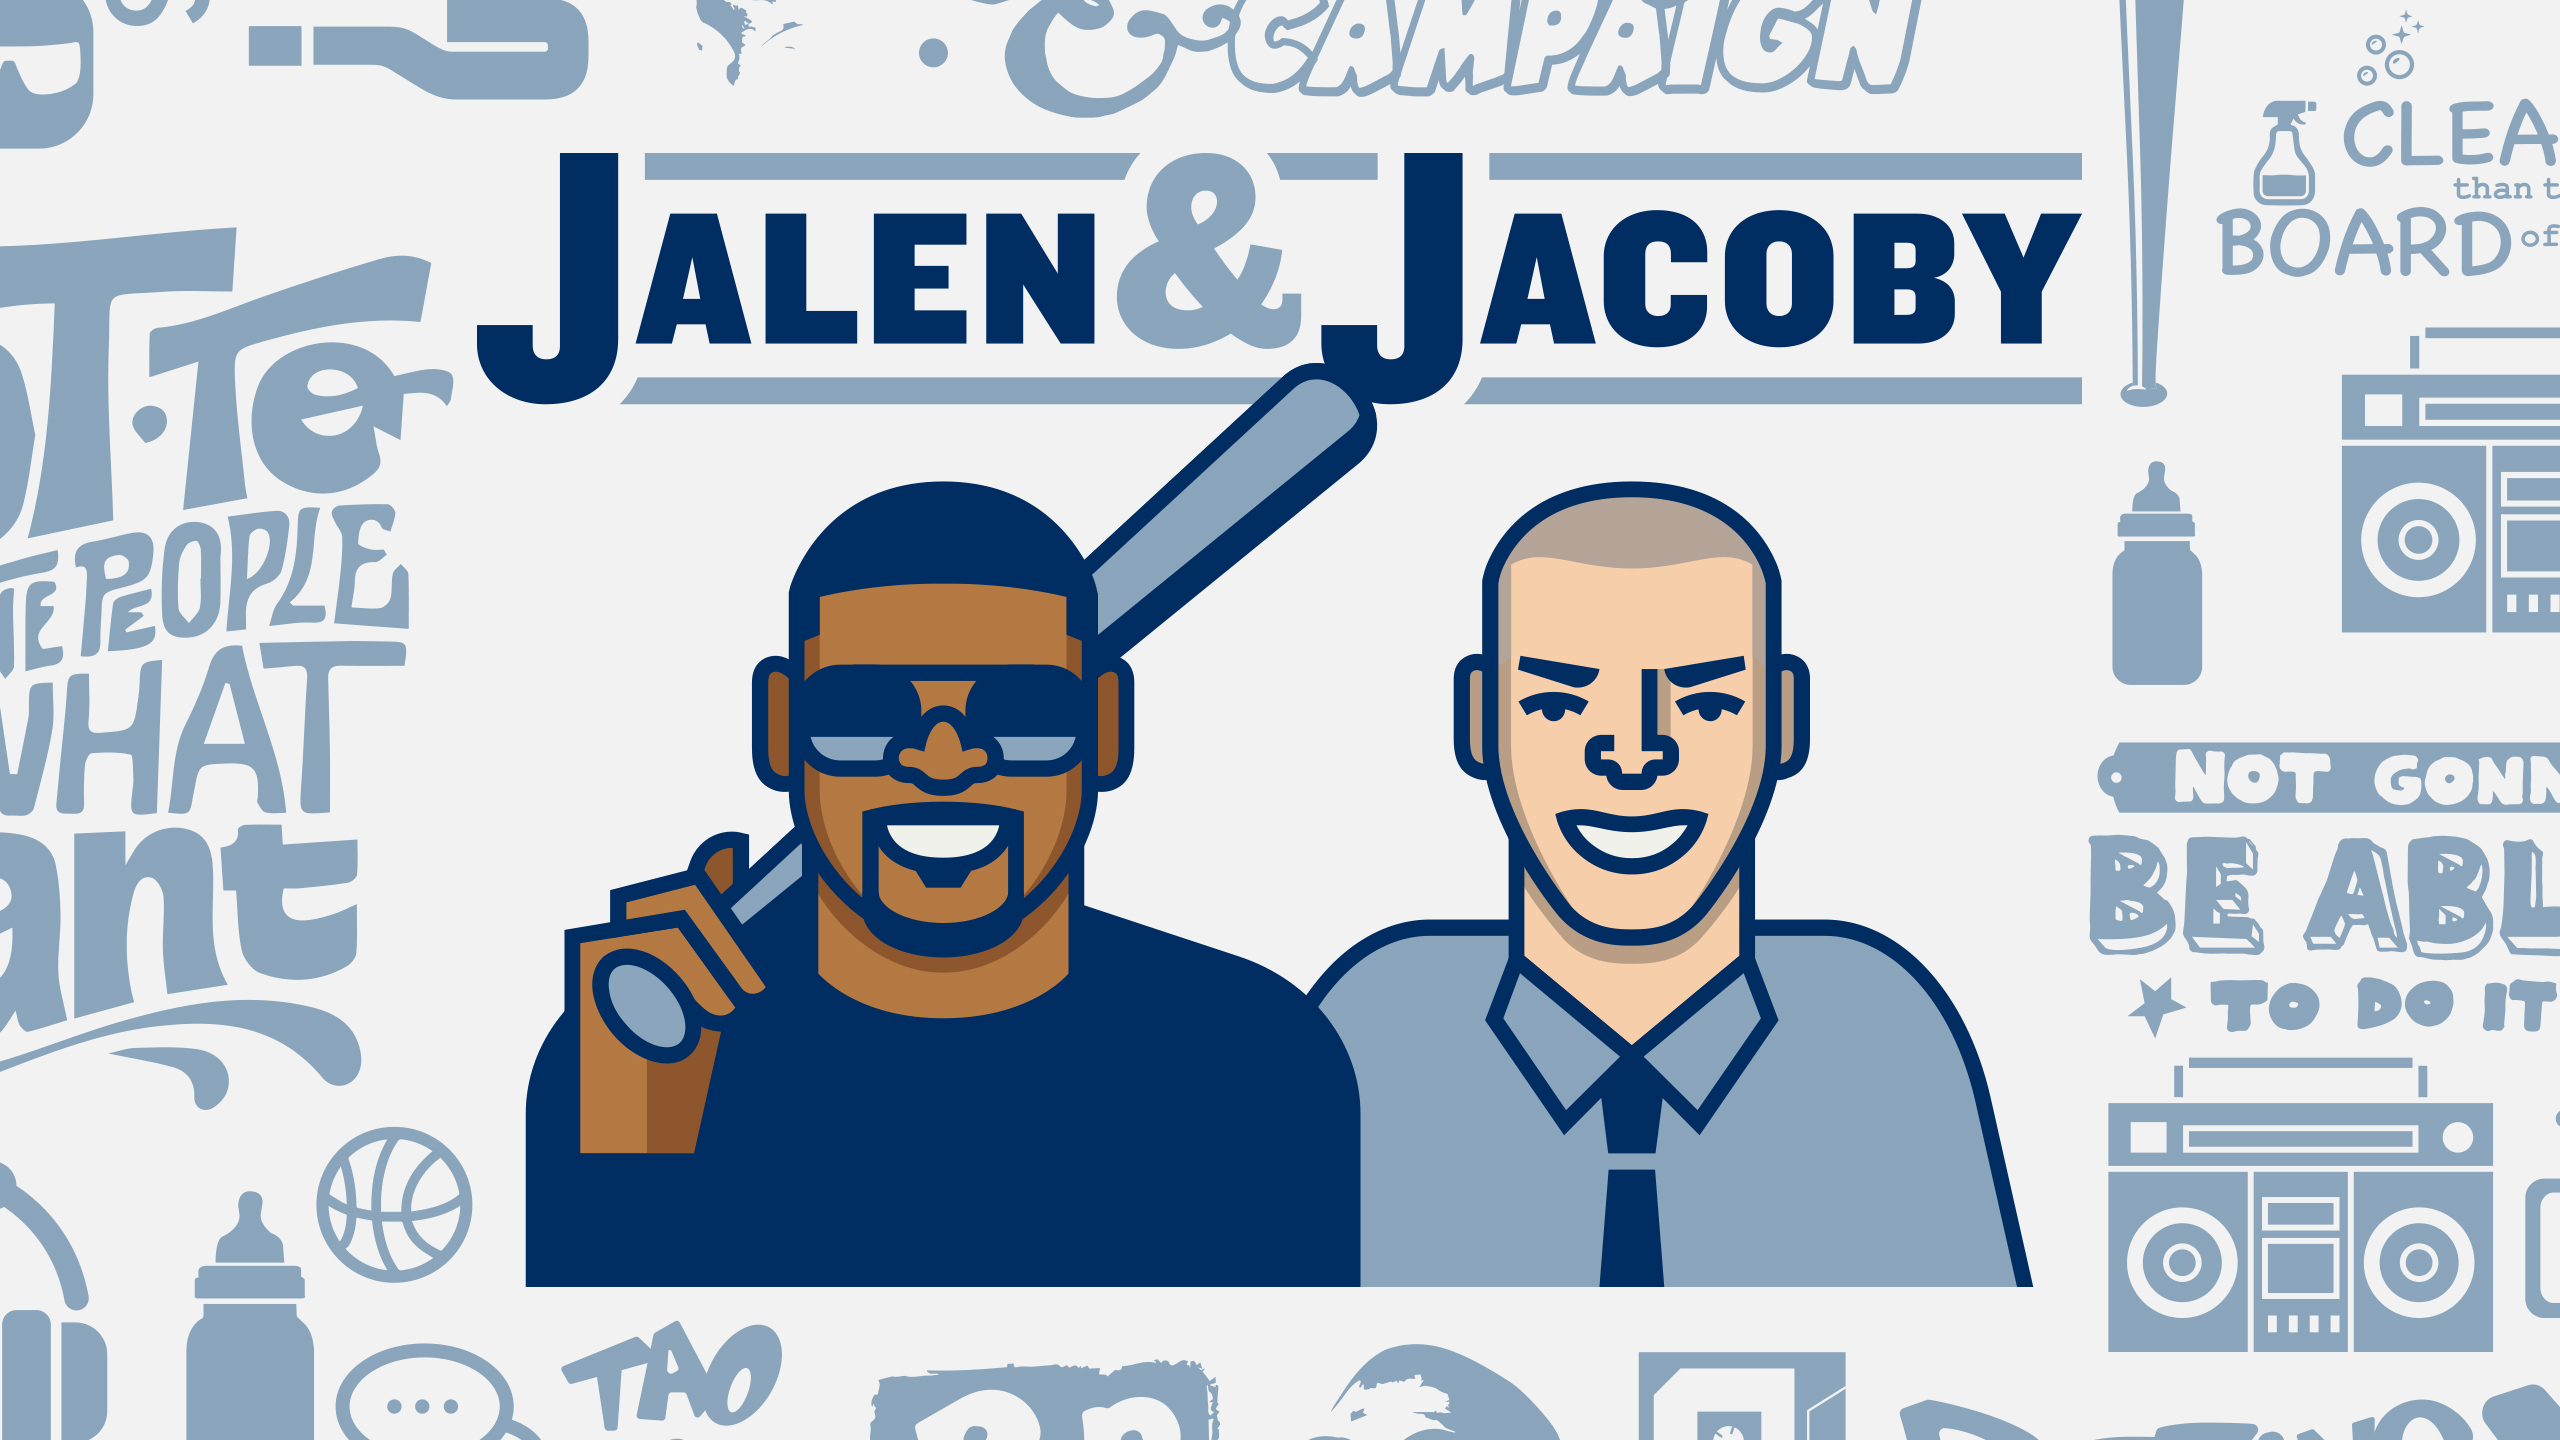 Thu, 3/21 - Jalen & Jacoby